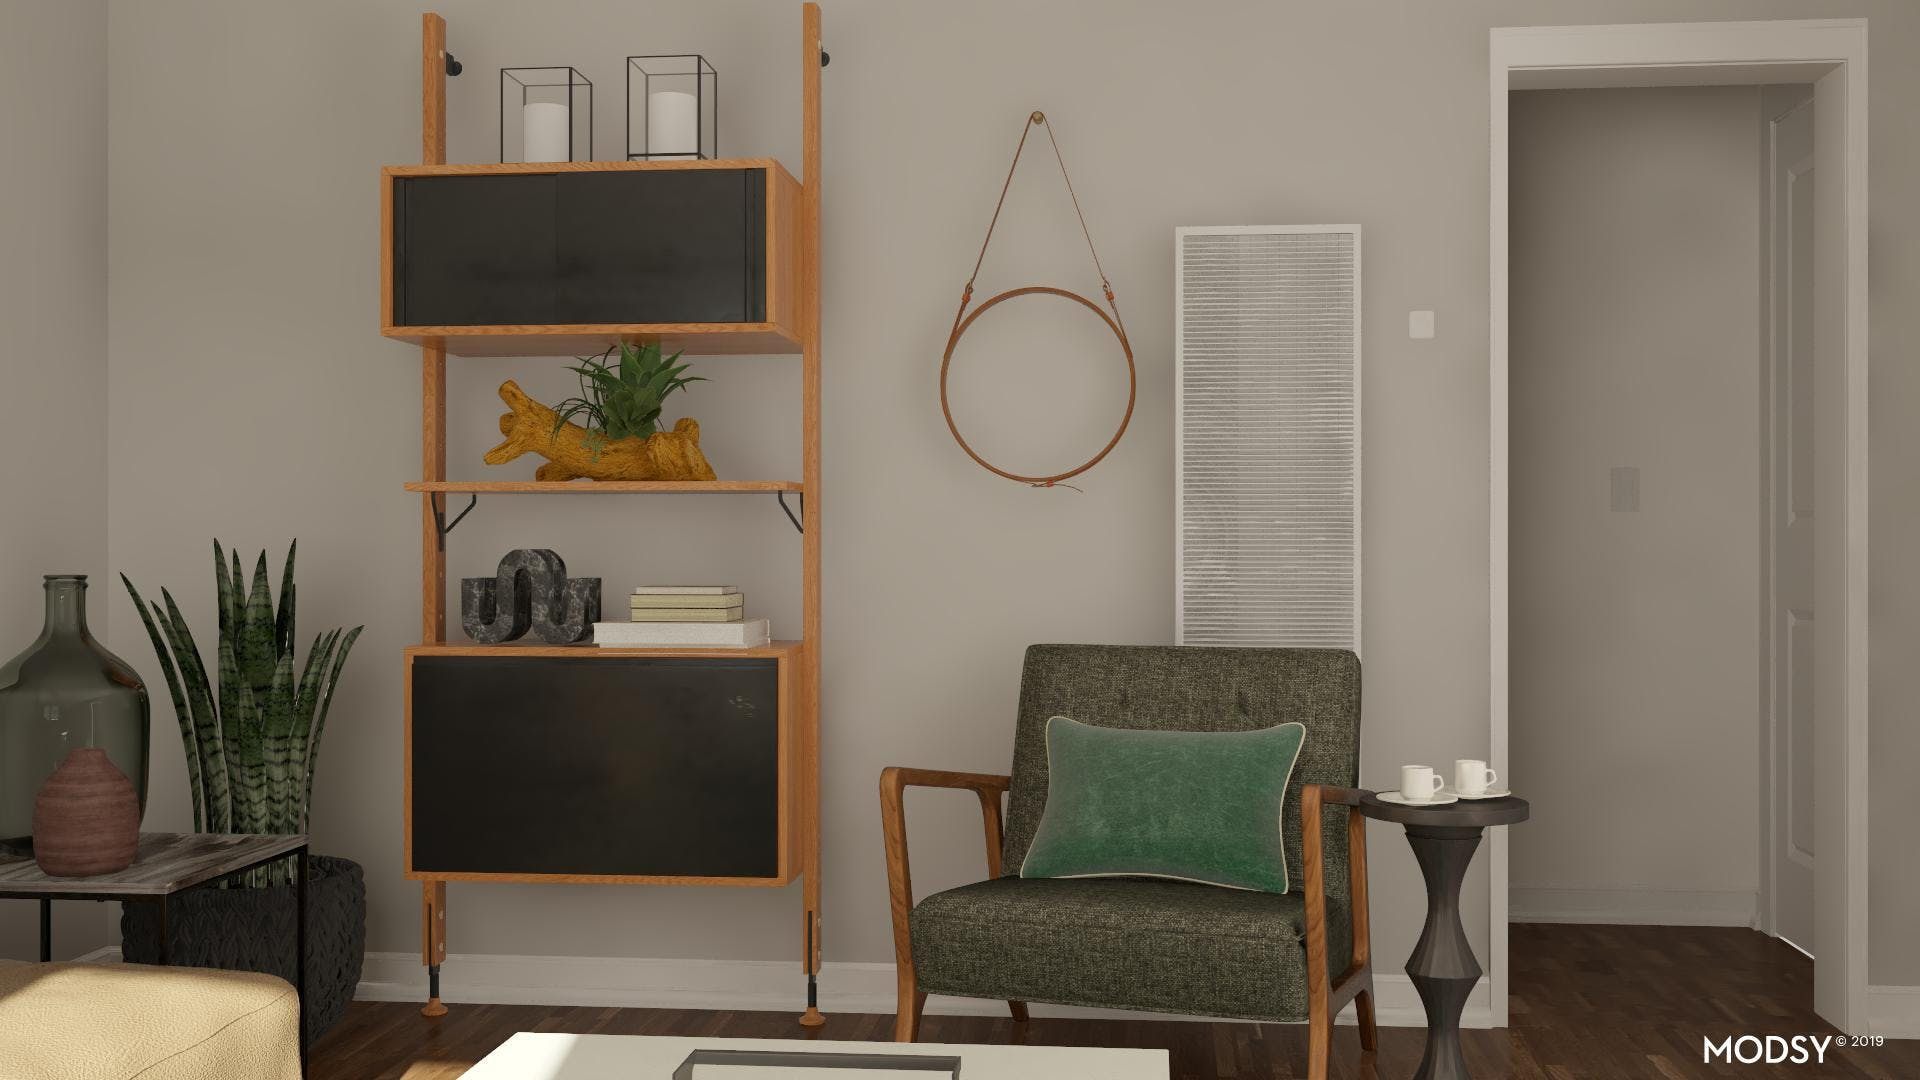 Minimal Design with Open and Closed Storage